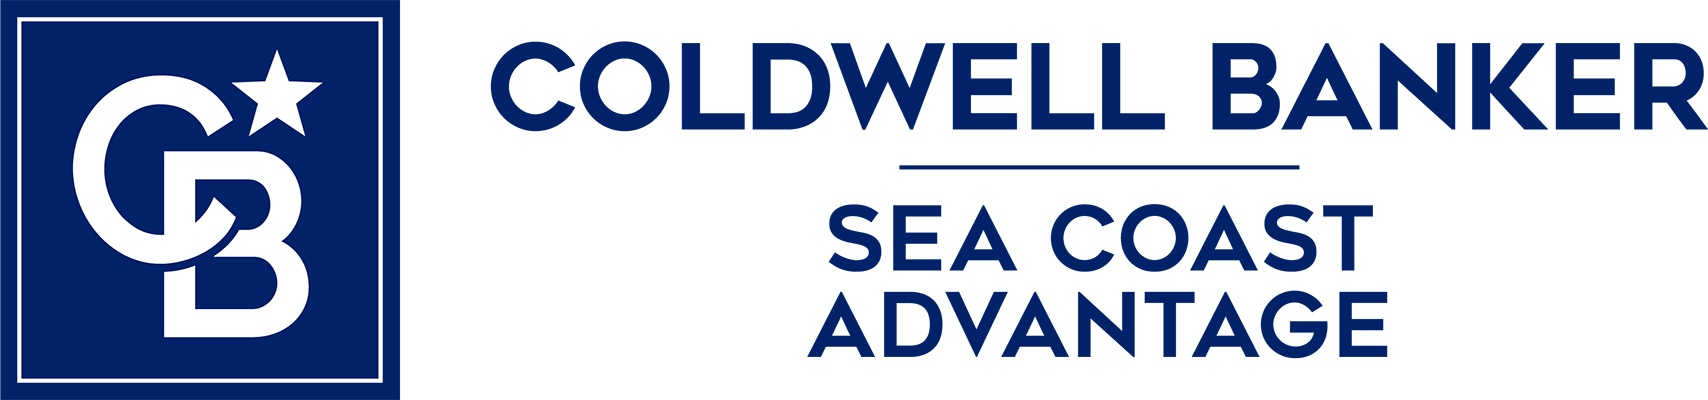 Judy Hall - Coldwell Banker Sea Coast Advantage Realty Logo